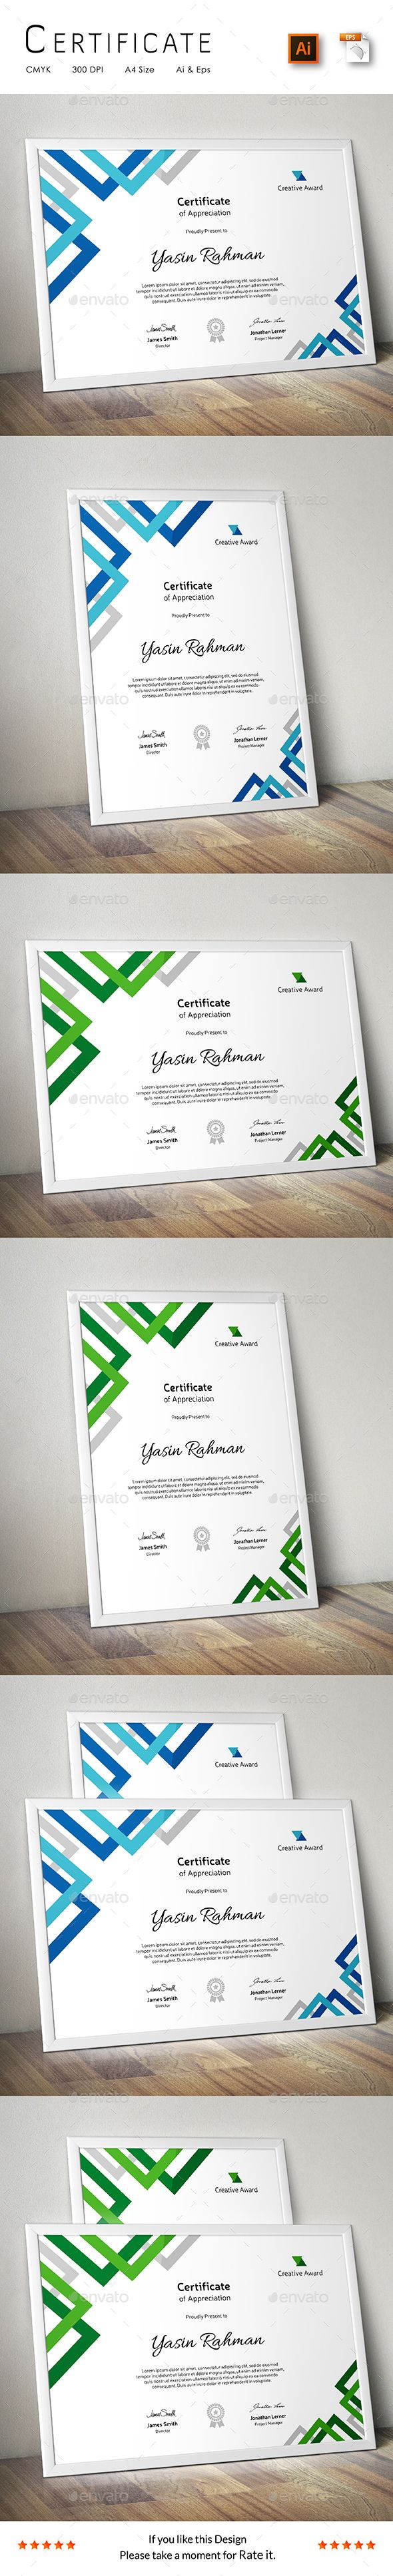 Certificate Template Vector EPS, AI. Download here: http://graphicriver.net/item/certificate/15012691?ref=ksioks